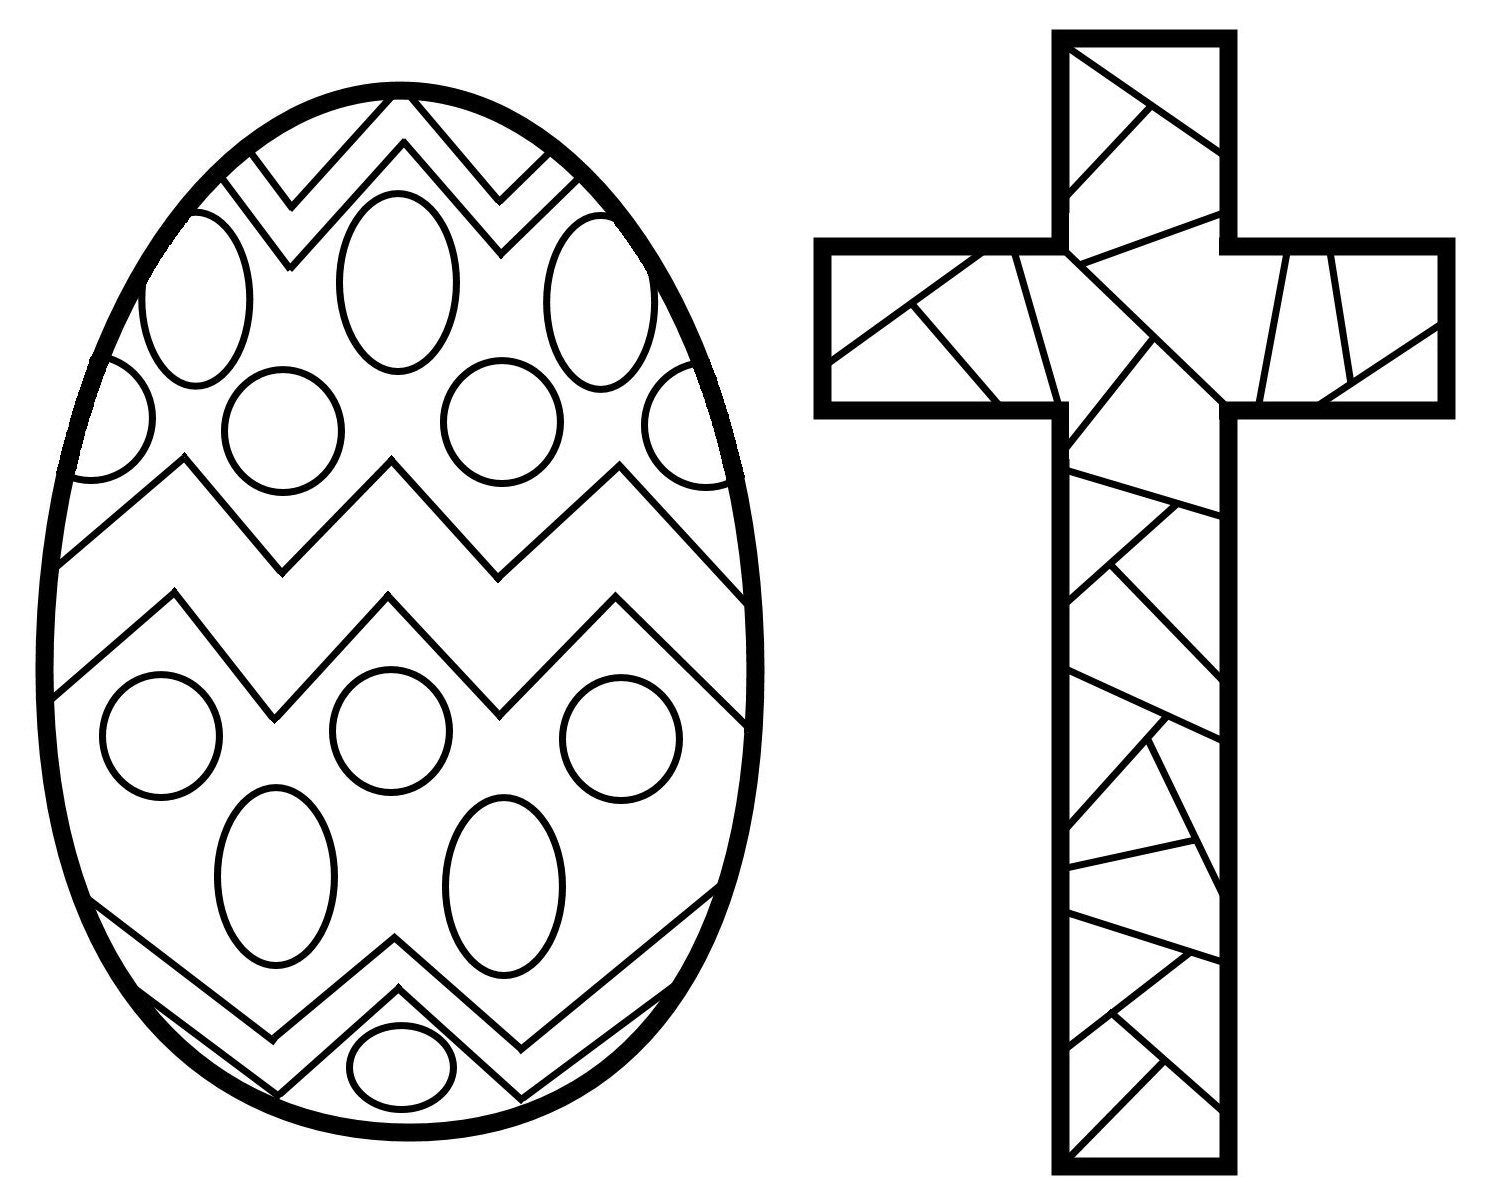 Easter Cross Coloring Pages Printable for Fancy Draw Print to Print Of Easter Coloring Printable Easter Coloring Pages Coloring Gallery